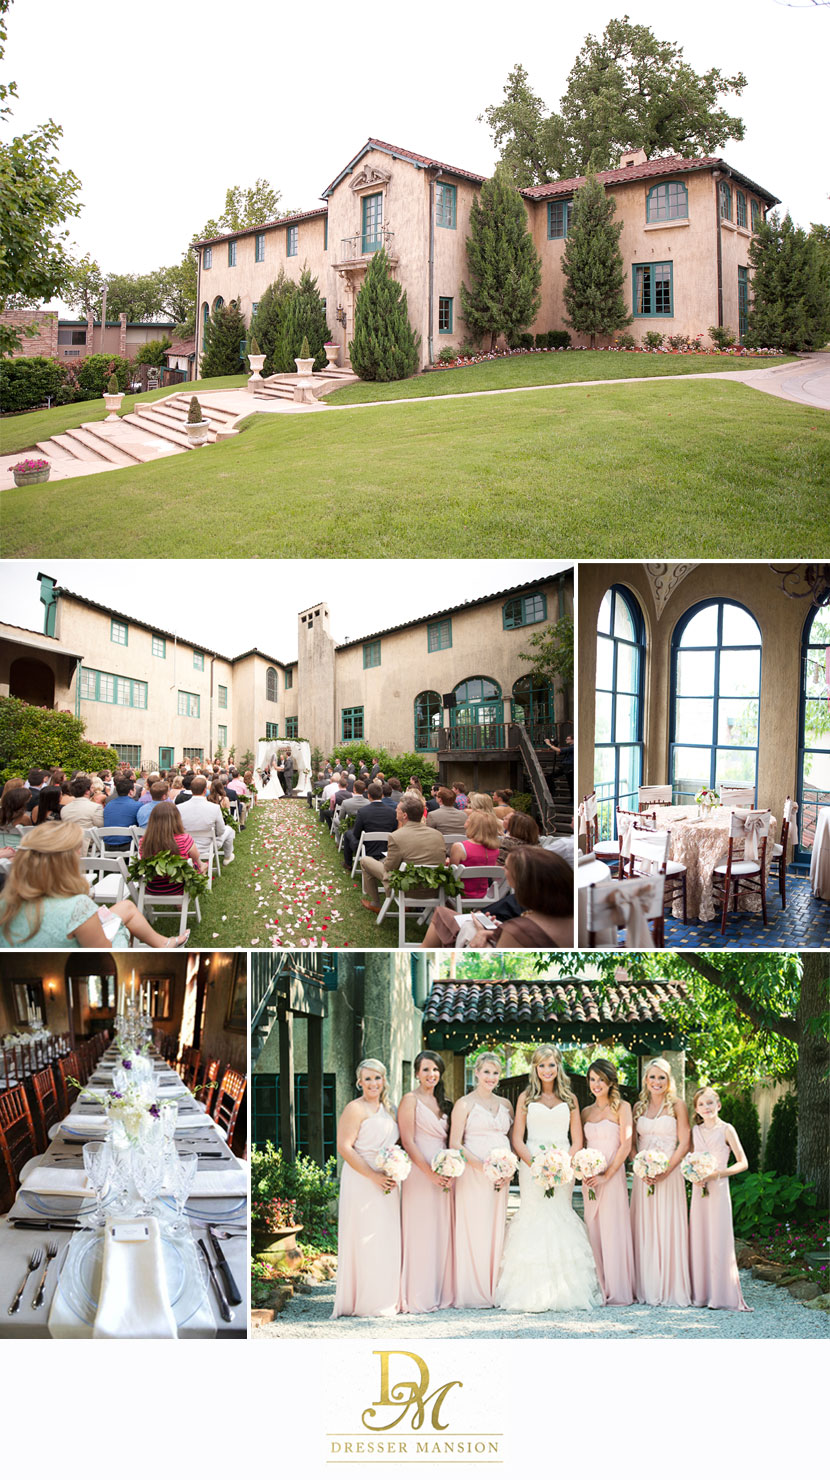 From Dreamy Elegance To Cutesy Creative The Dresser Mansion In Tulsa Provides A Unique Location For Your Wedding Day S Exterior